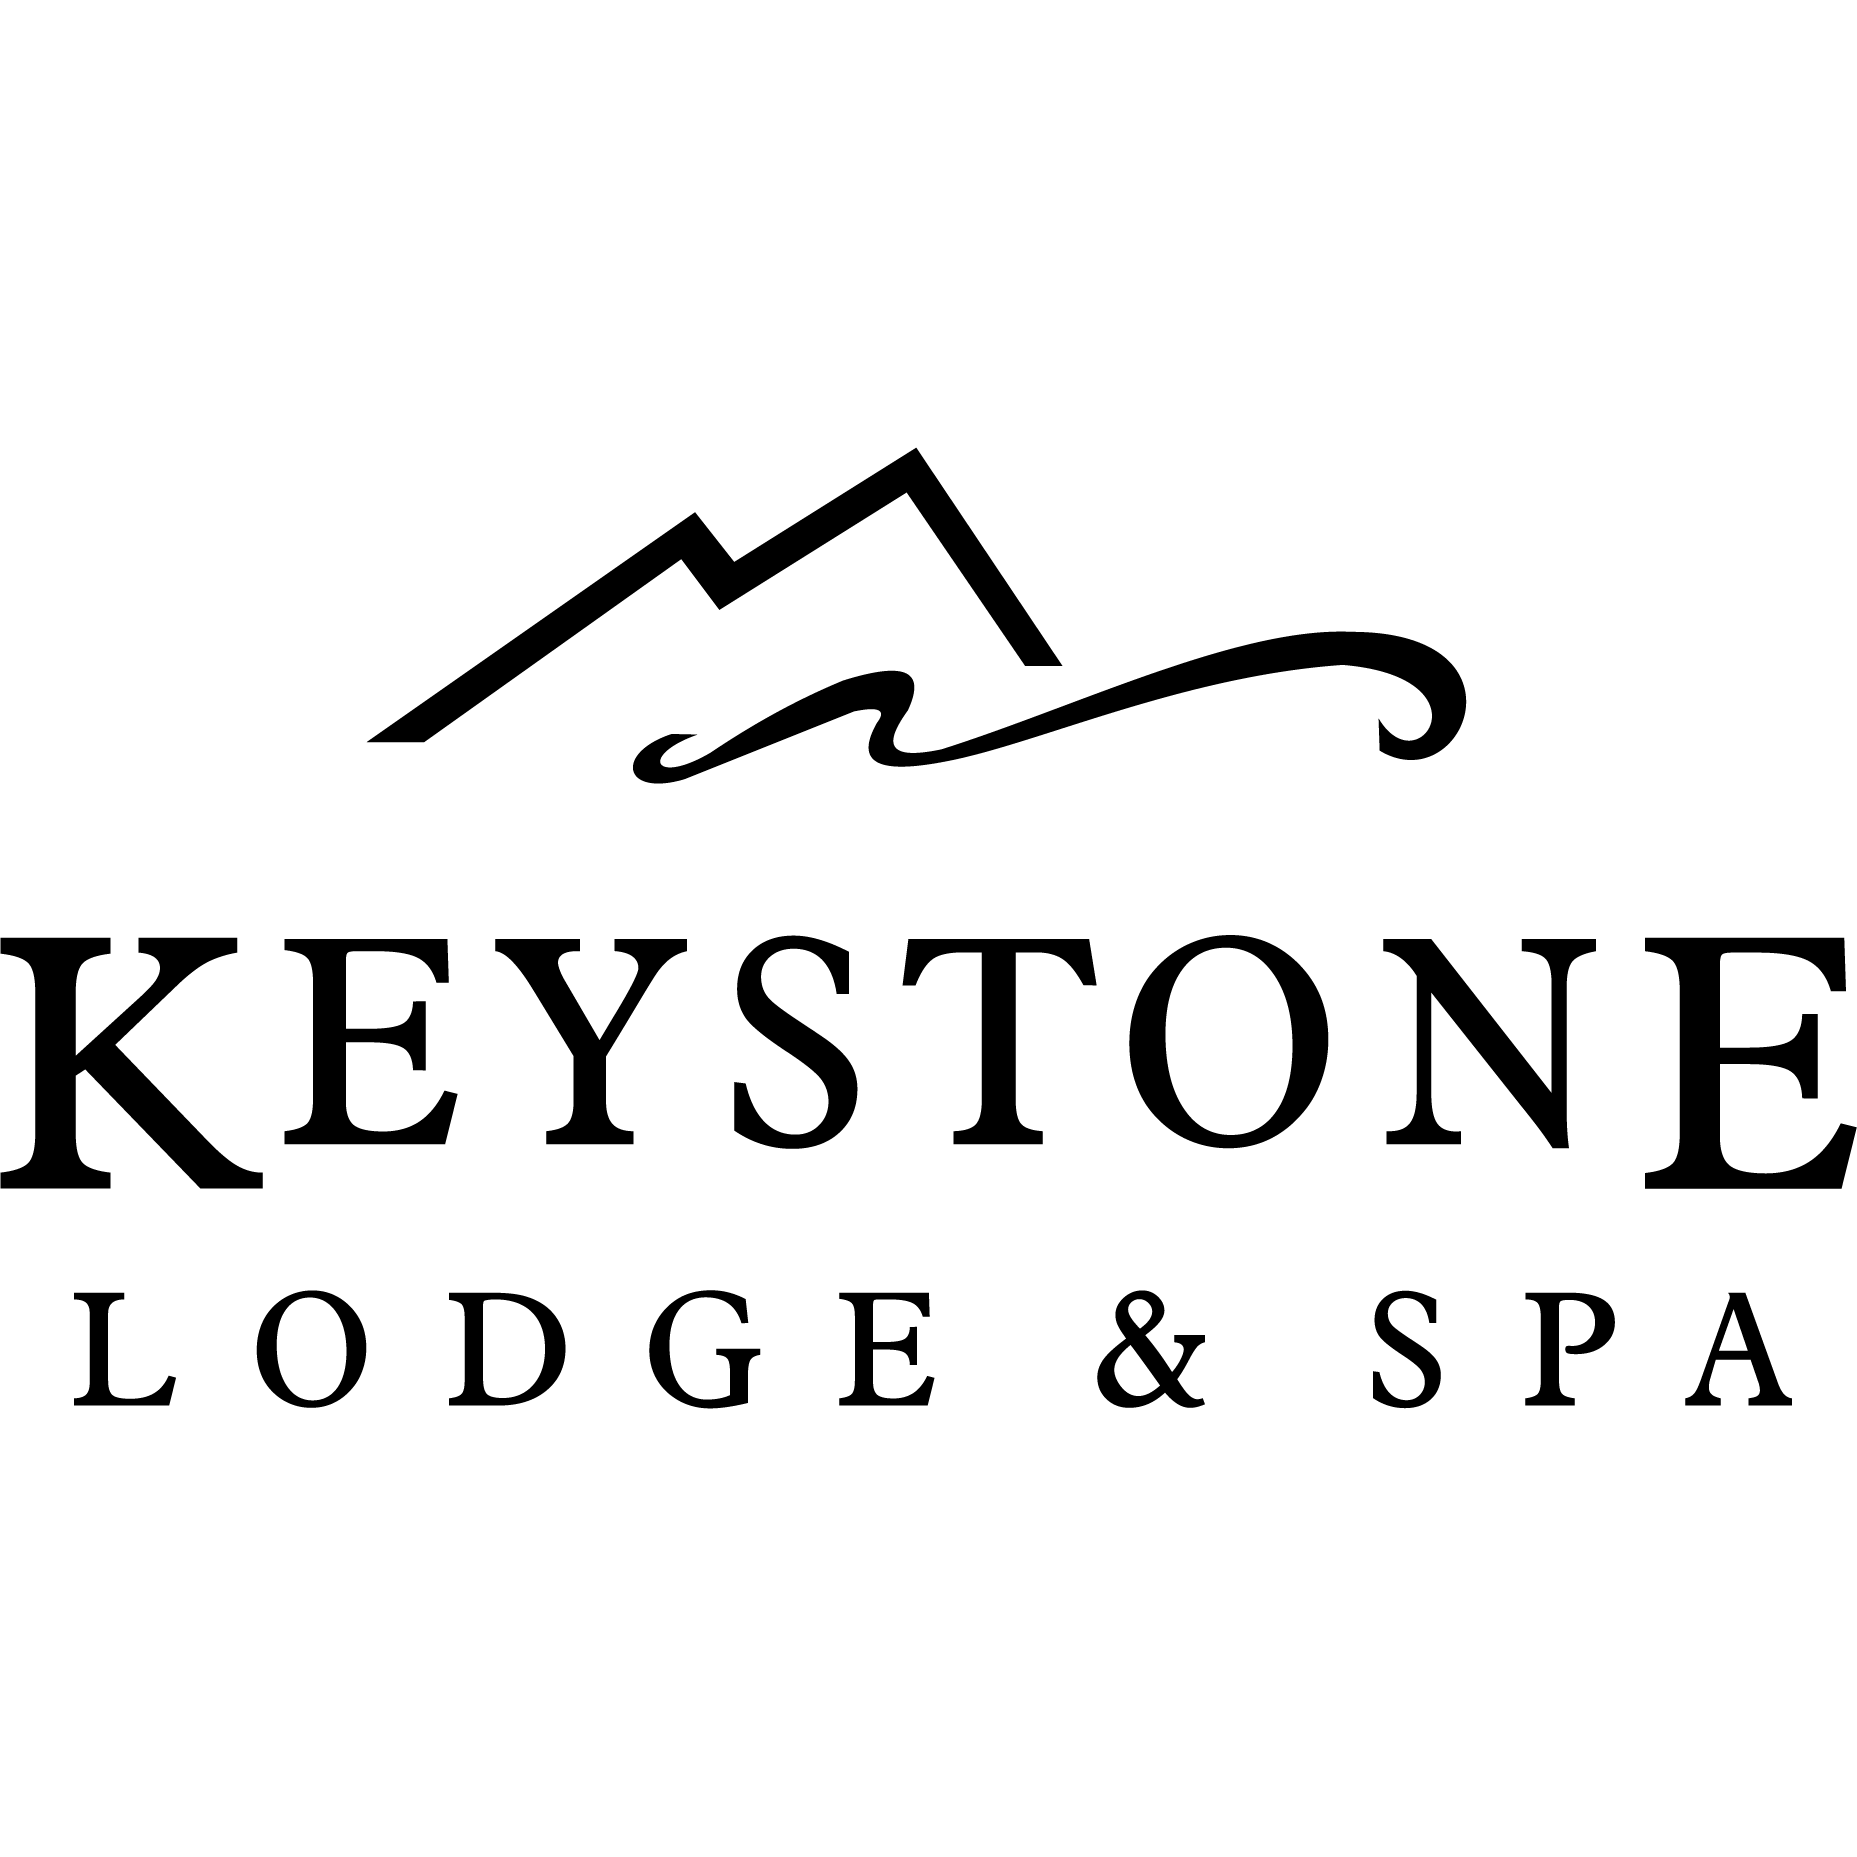 Keystone Lodge & Spa image 8